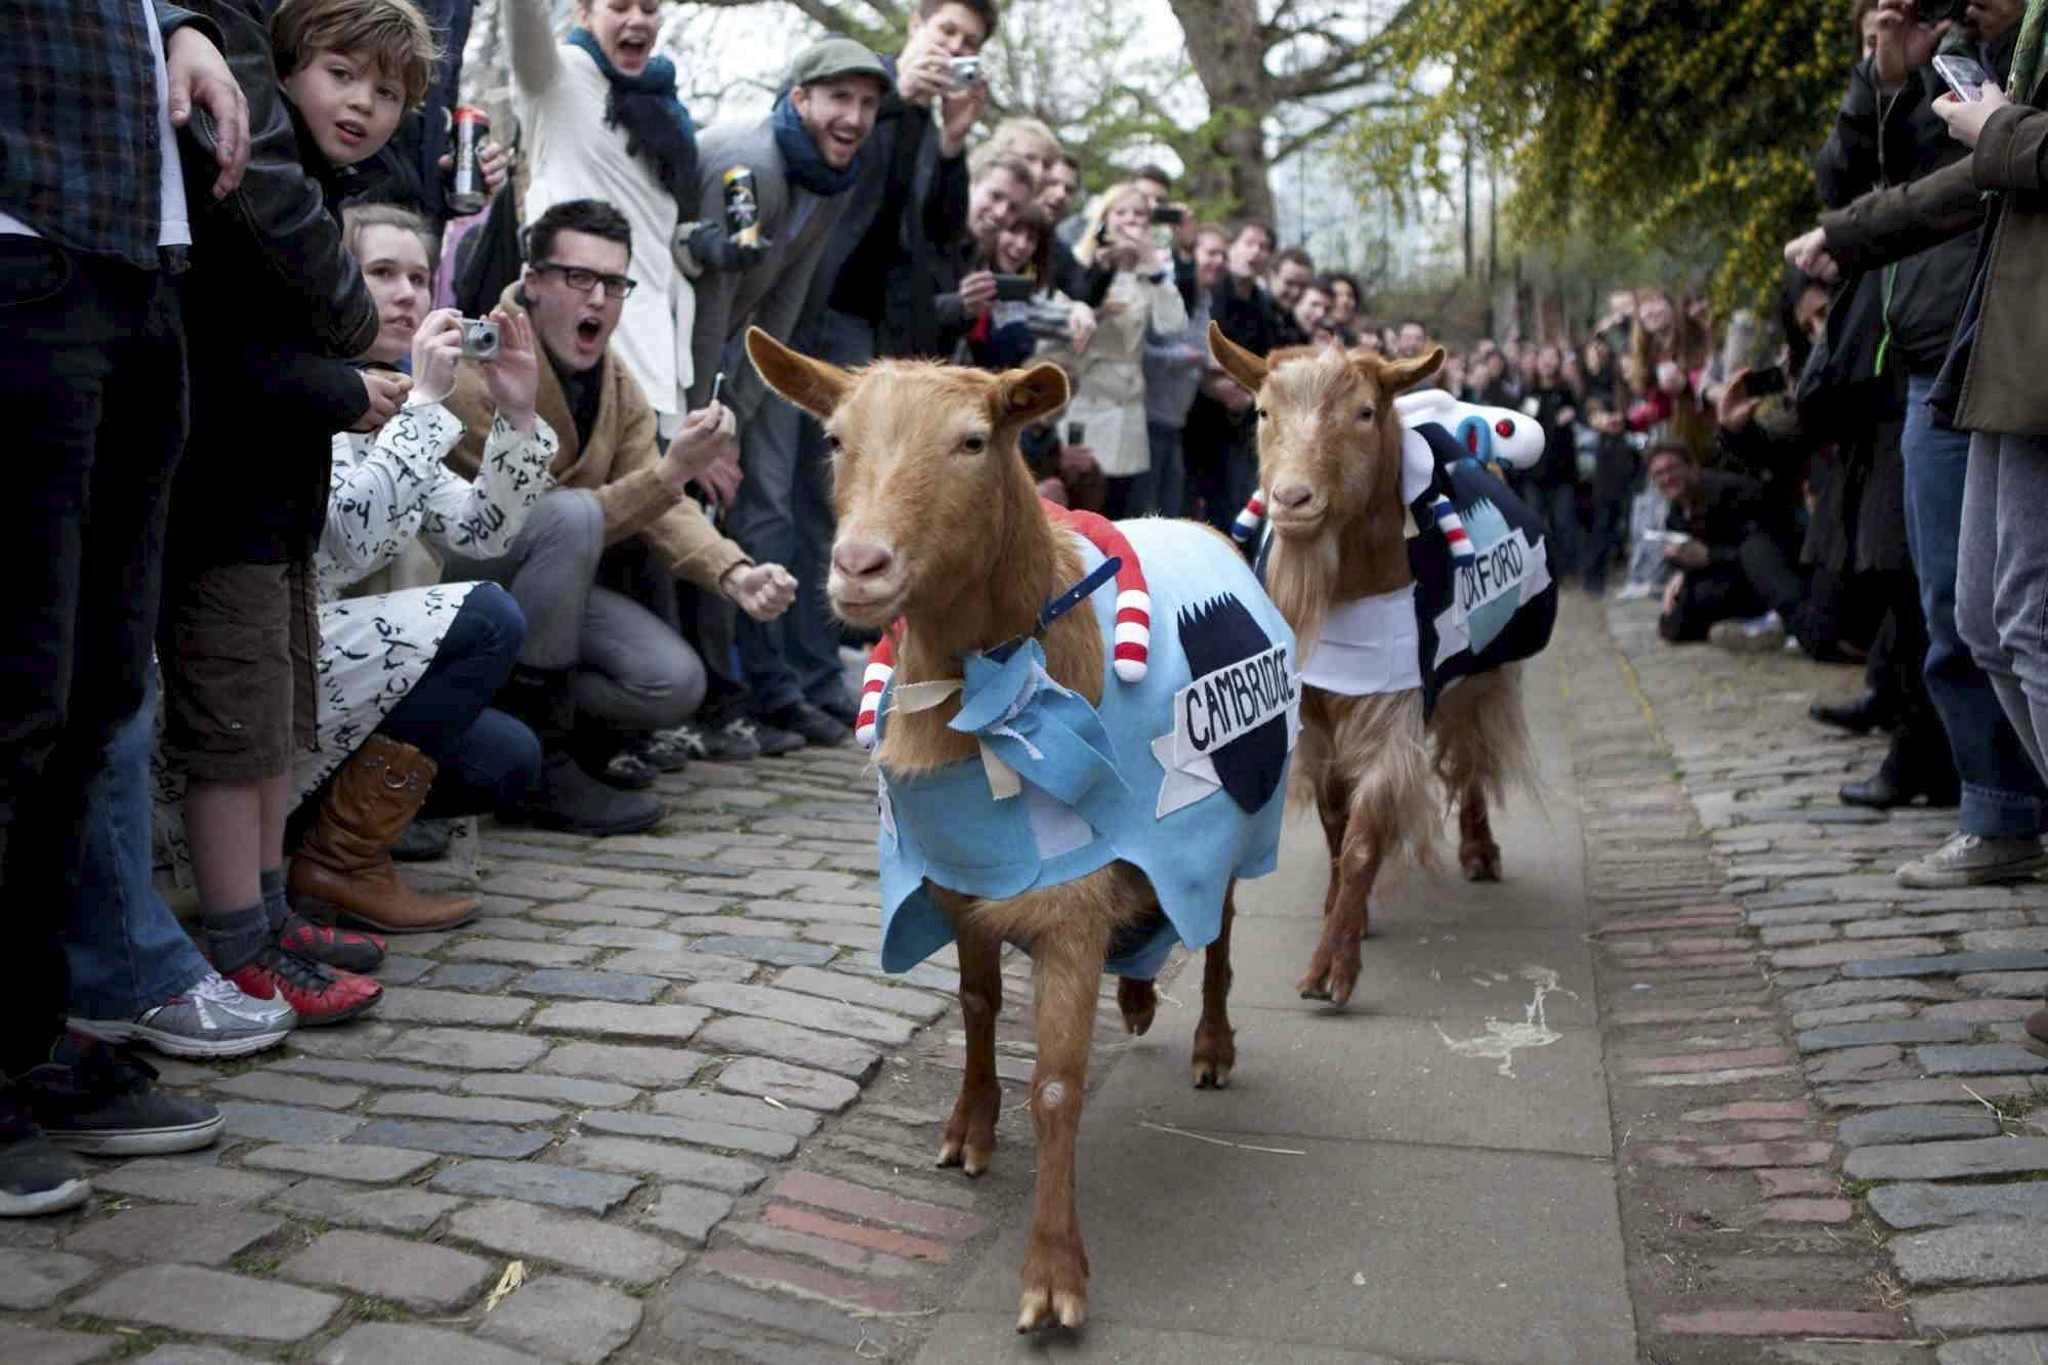 The Oxford and Cambridge Goat Race